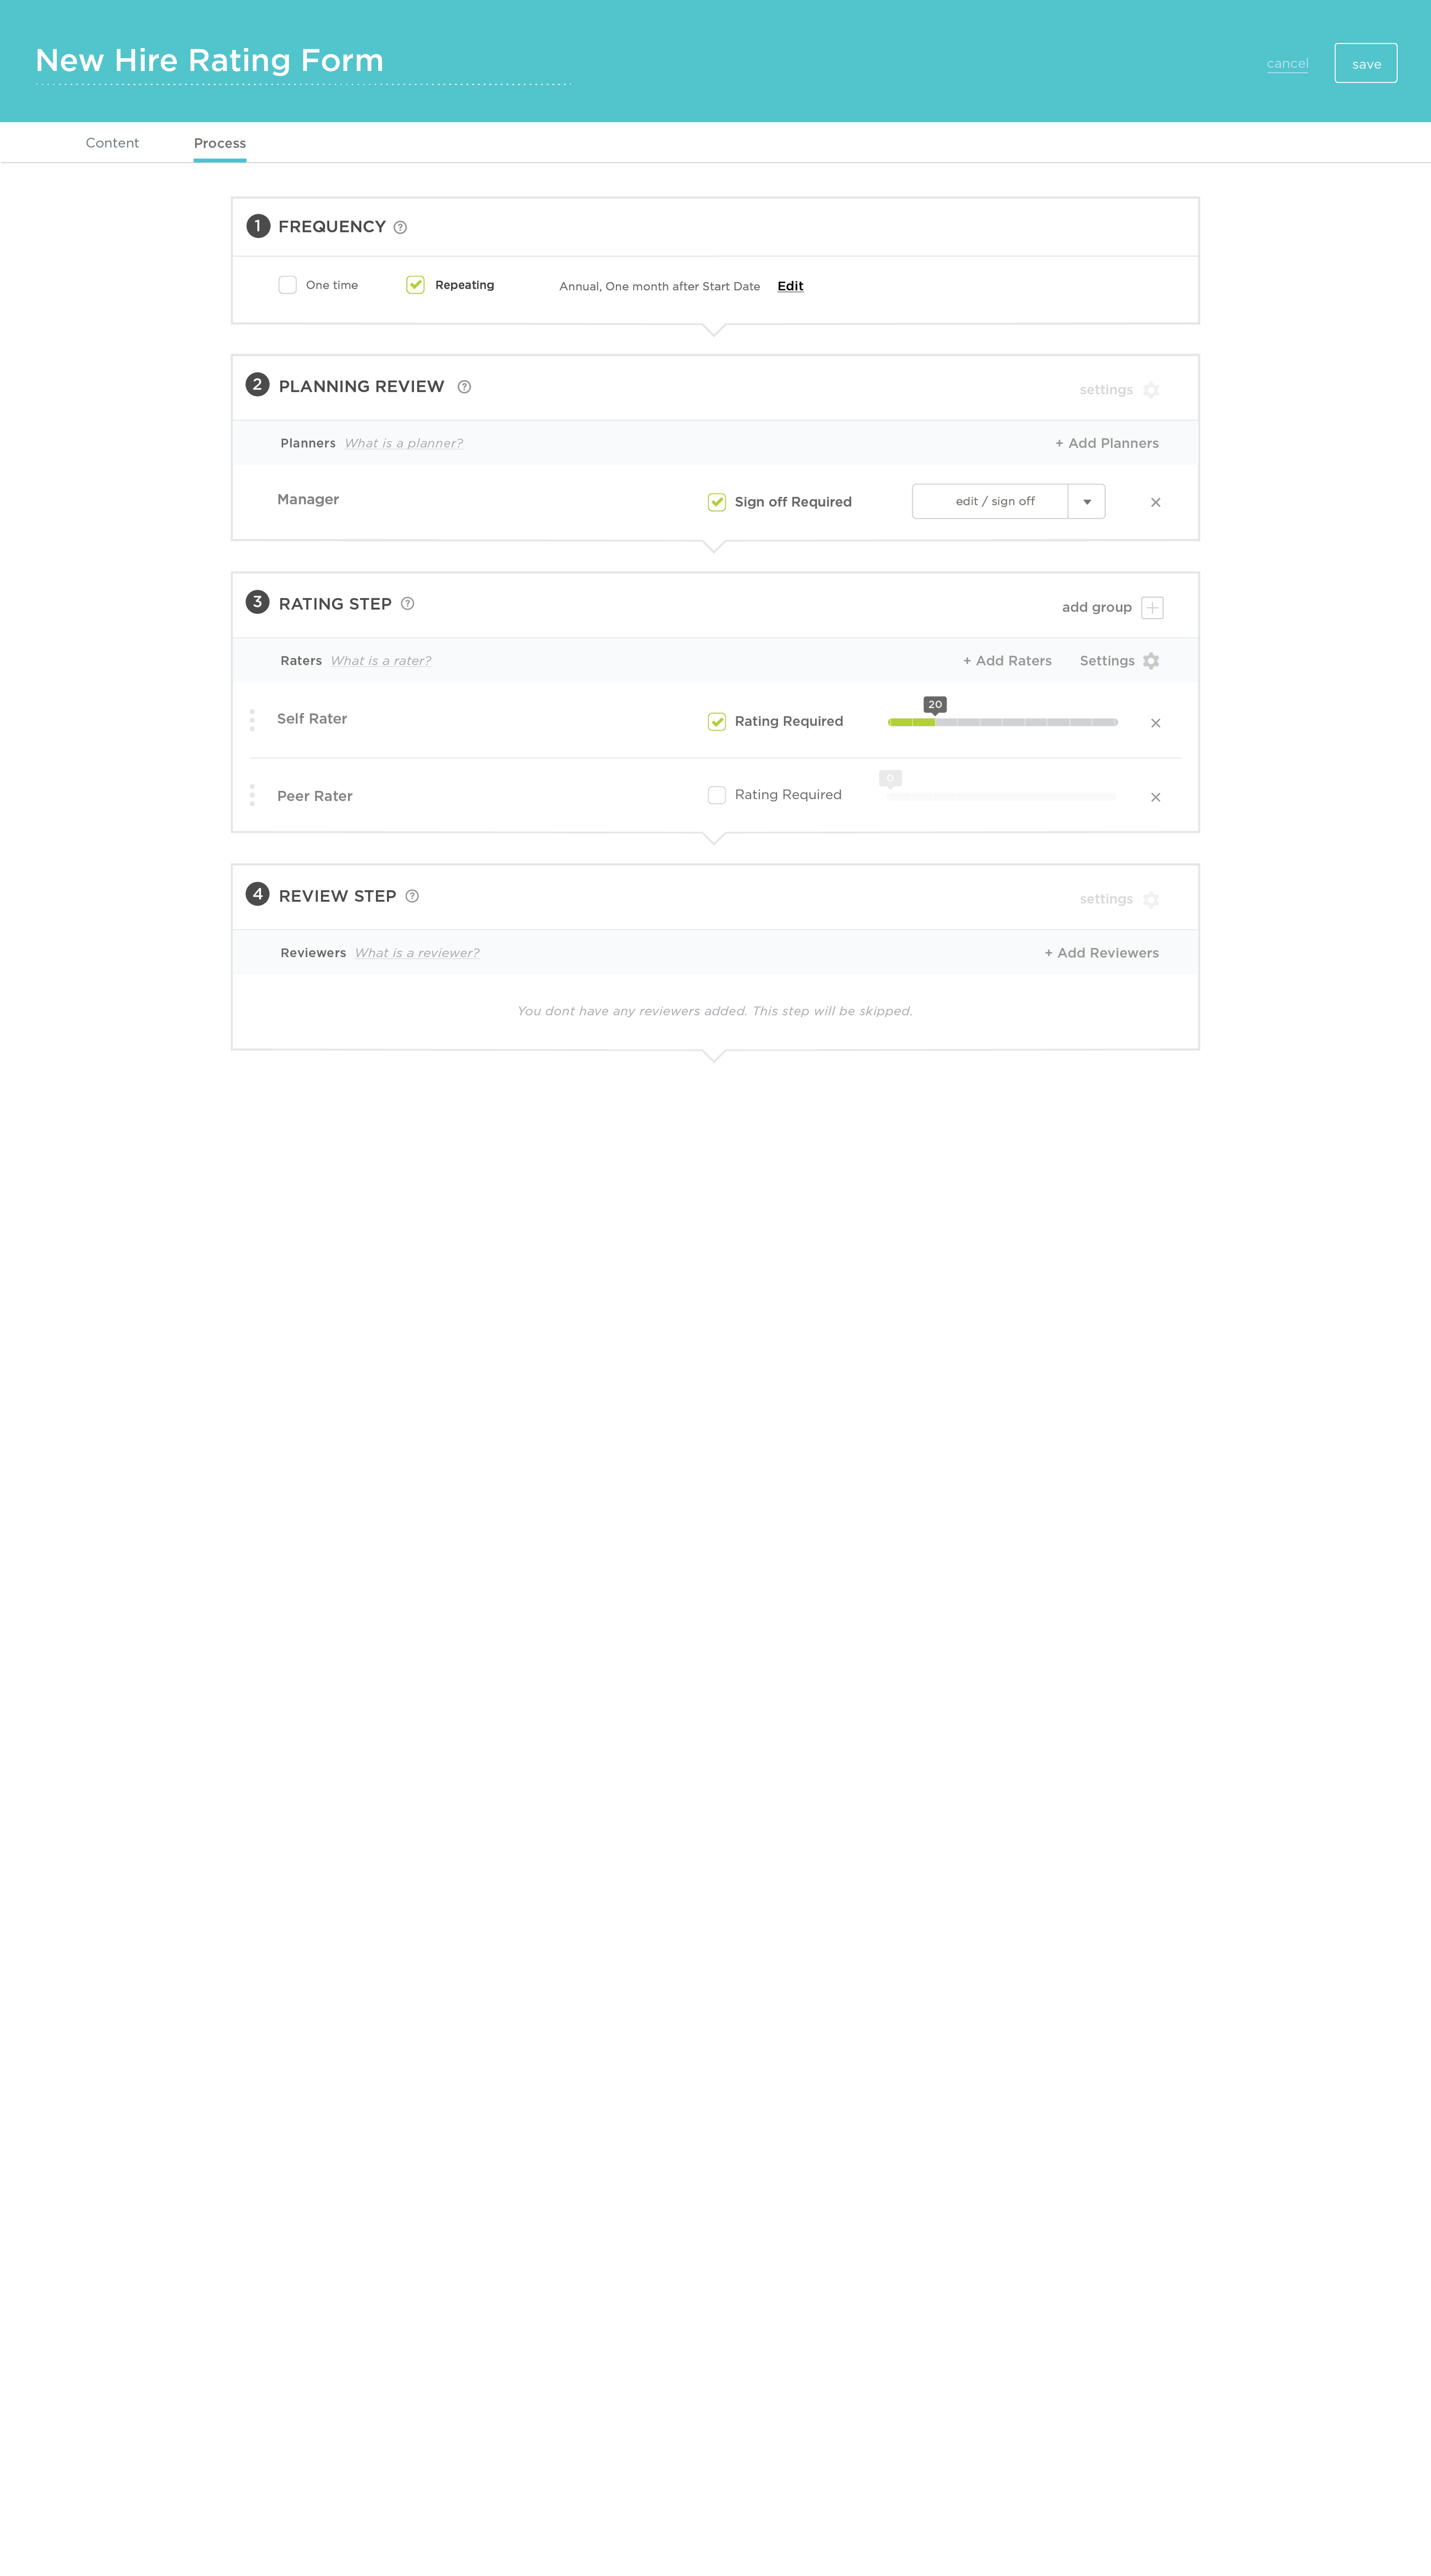 Invision_Pe_rating-form-process_03_14.png